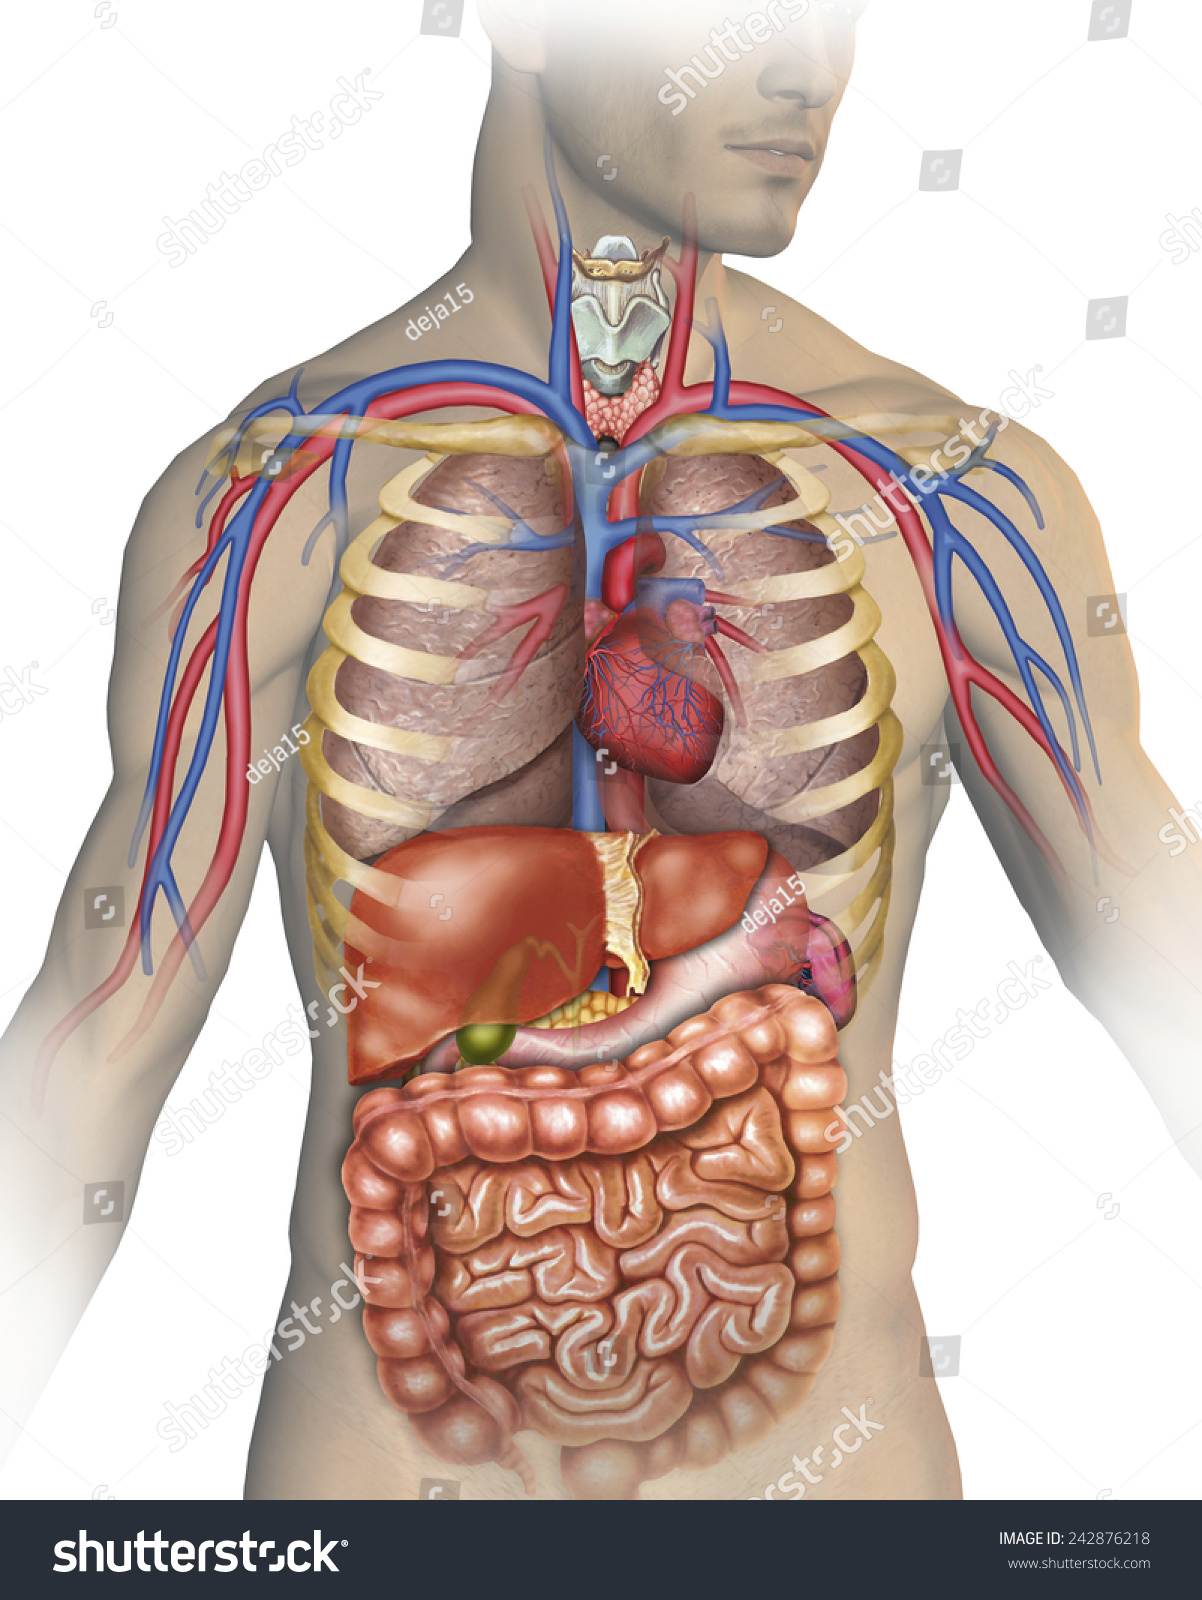 human body anatomy stock illustration 242876218 - shutterstock, Skeleton